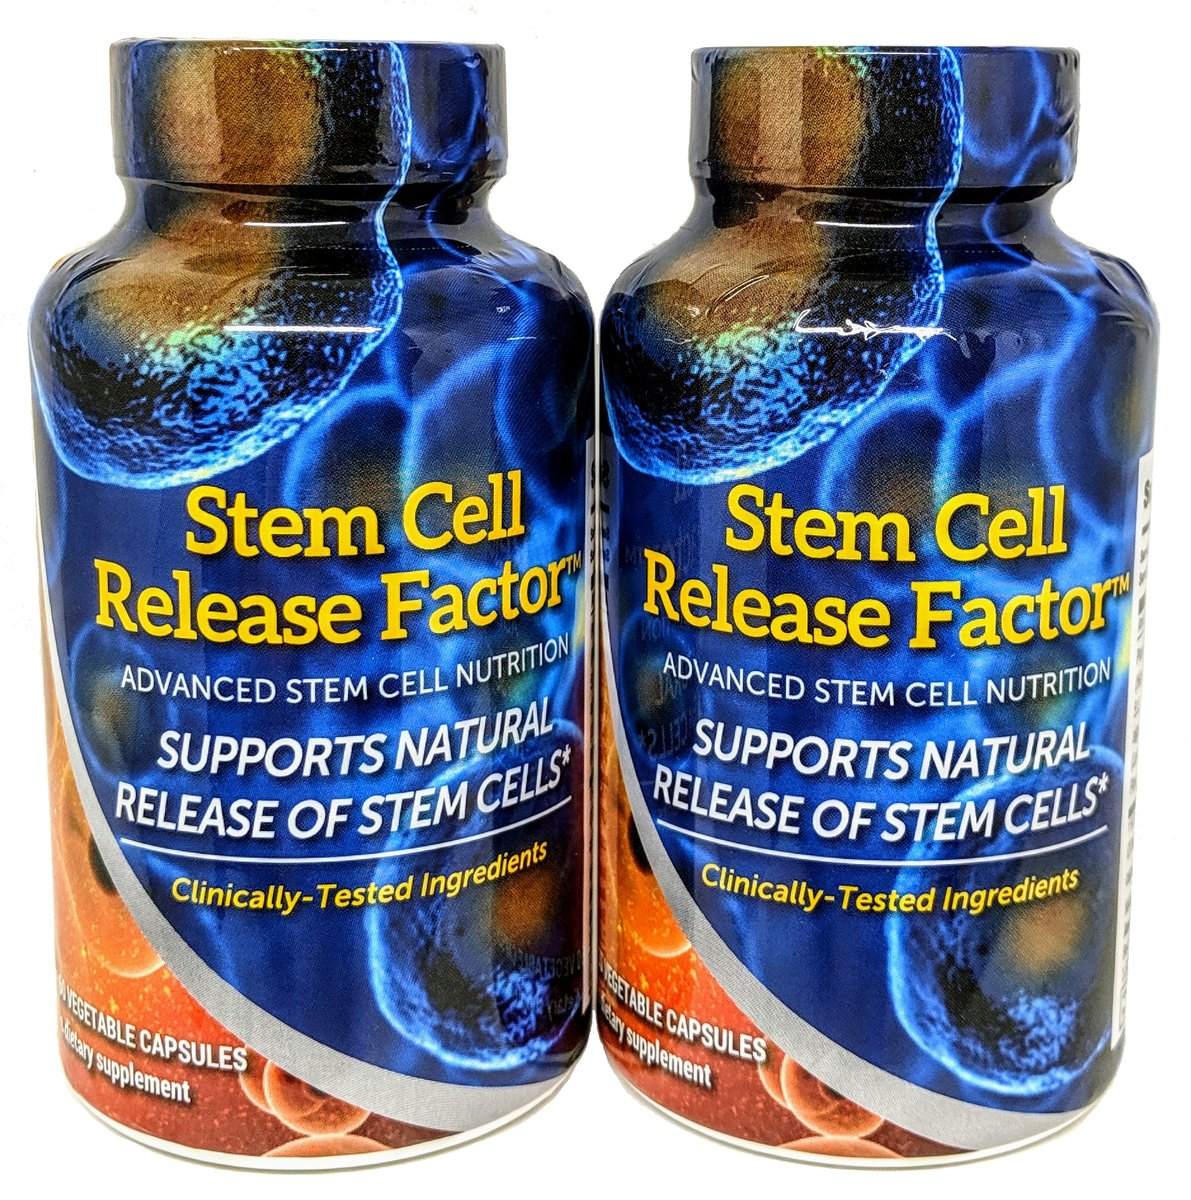 I Hope People are Thinking about their Health for 2020. Would you take a product that might be good for you with the Science to back it? Virtually Every Major Medical Center is Now Studying StemCells  Breakthrough in anti-aging https://www.stemcellreleasefactor.com/   https://www.americandream4me.com/healthnut1952 pic.twitter.com/iHq4Q7JDDZ